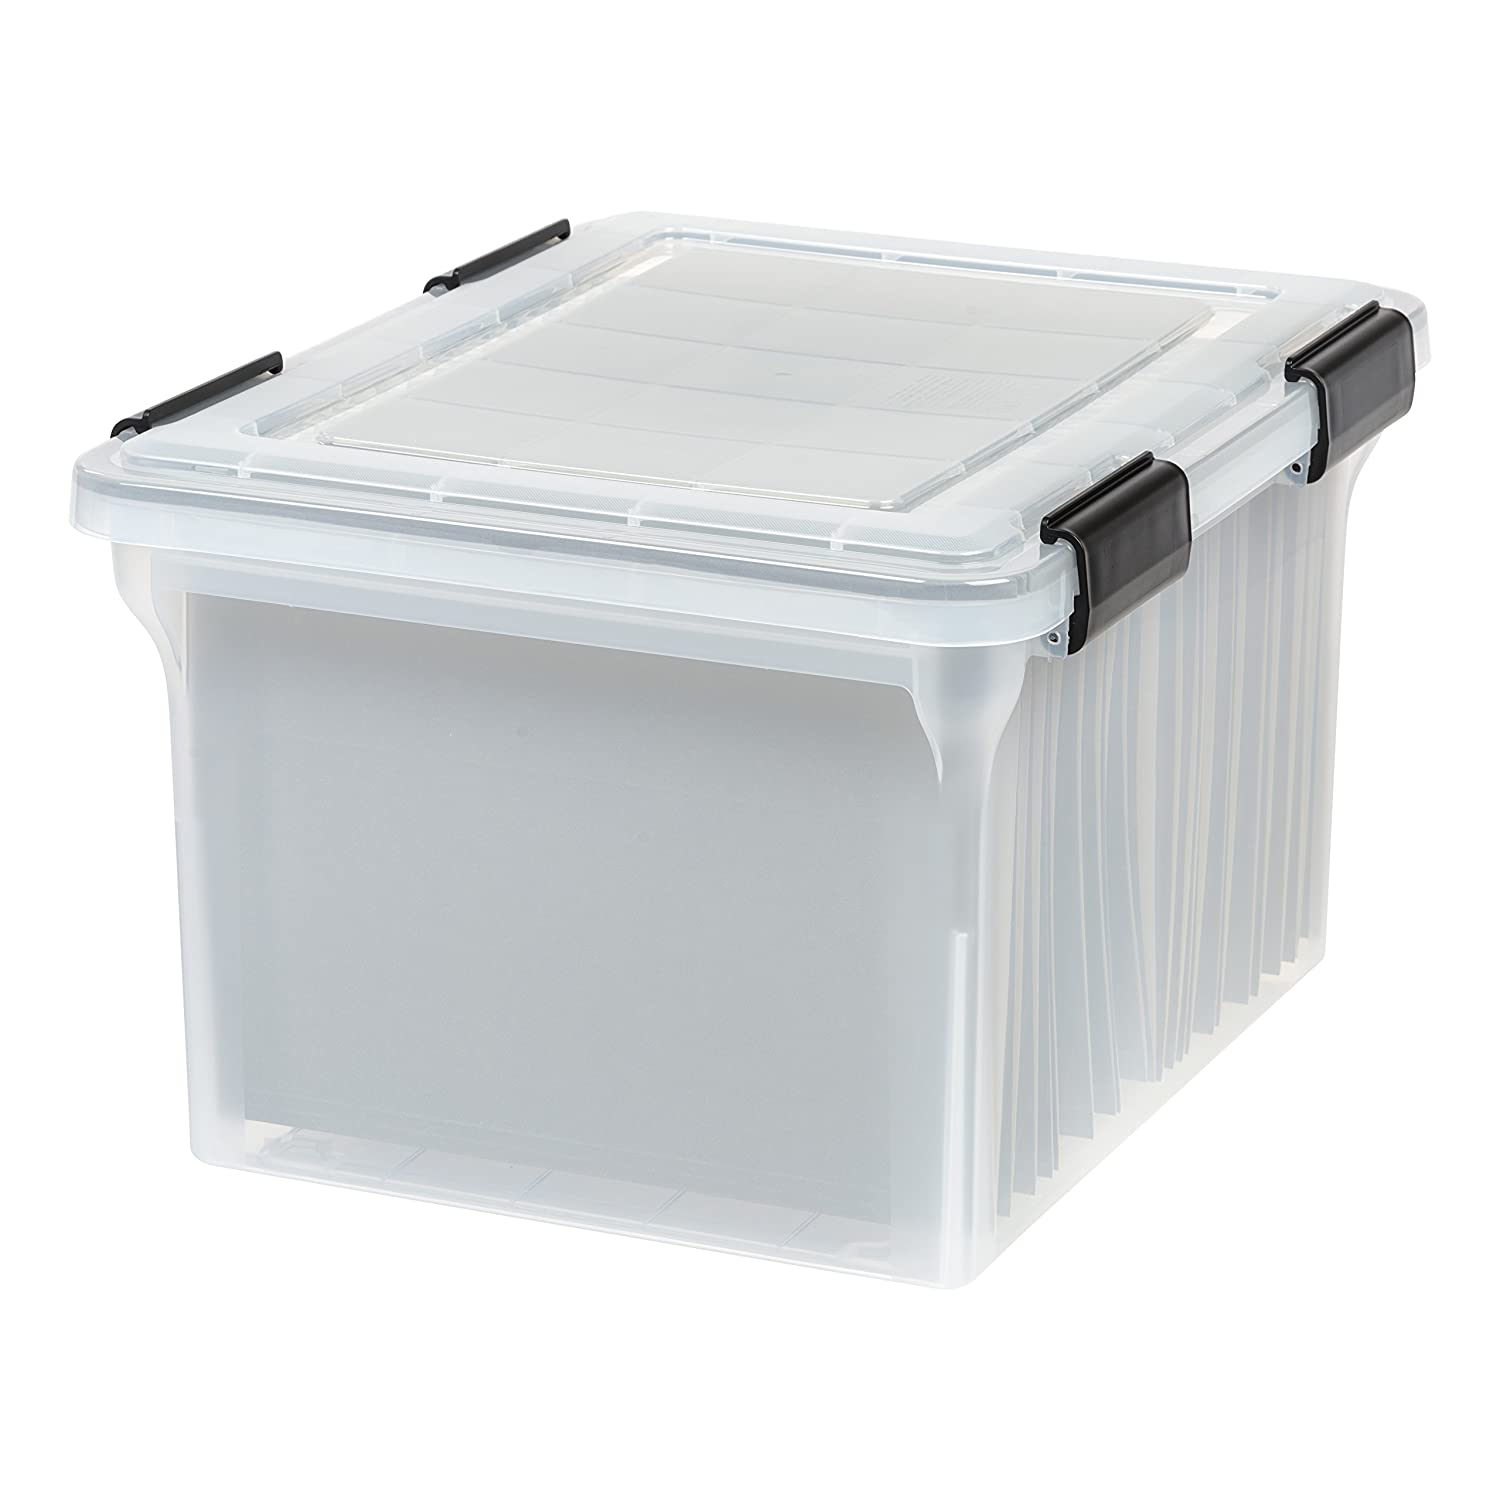 IRIS USA, Inc. UCB-FB WEATHERTIGHT Letter and Legal Size File Box, 32 Quart, Clear